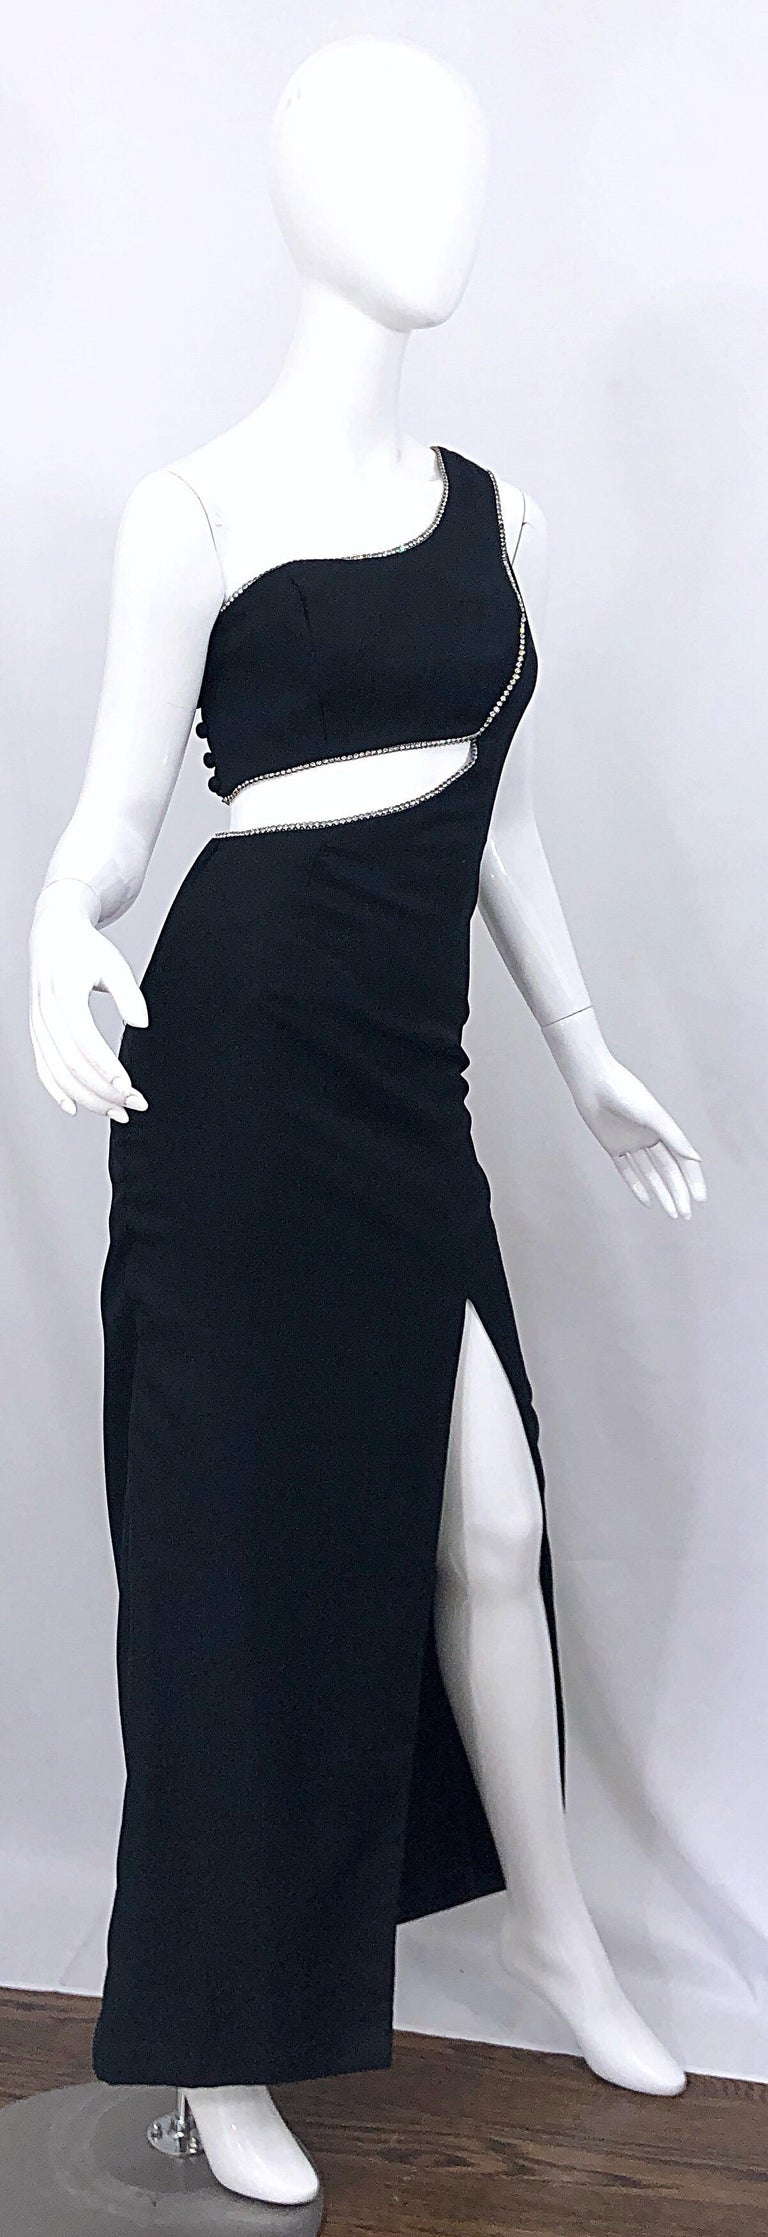 Sexy 1990s Size 6 / 8 Black Crepe Rayon + Rhinestones One Shoulder Cut Out Gown For Sale 2